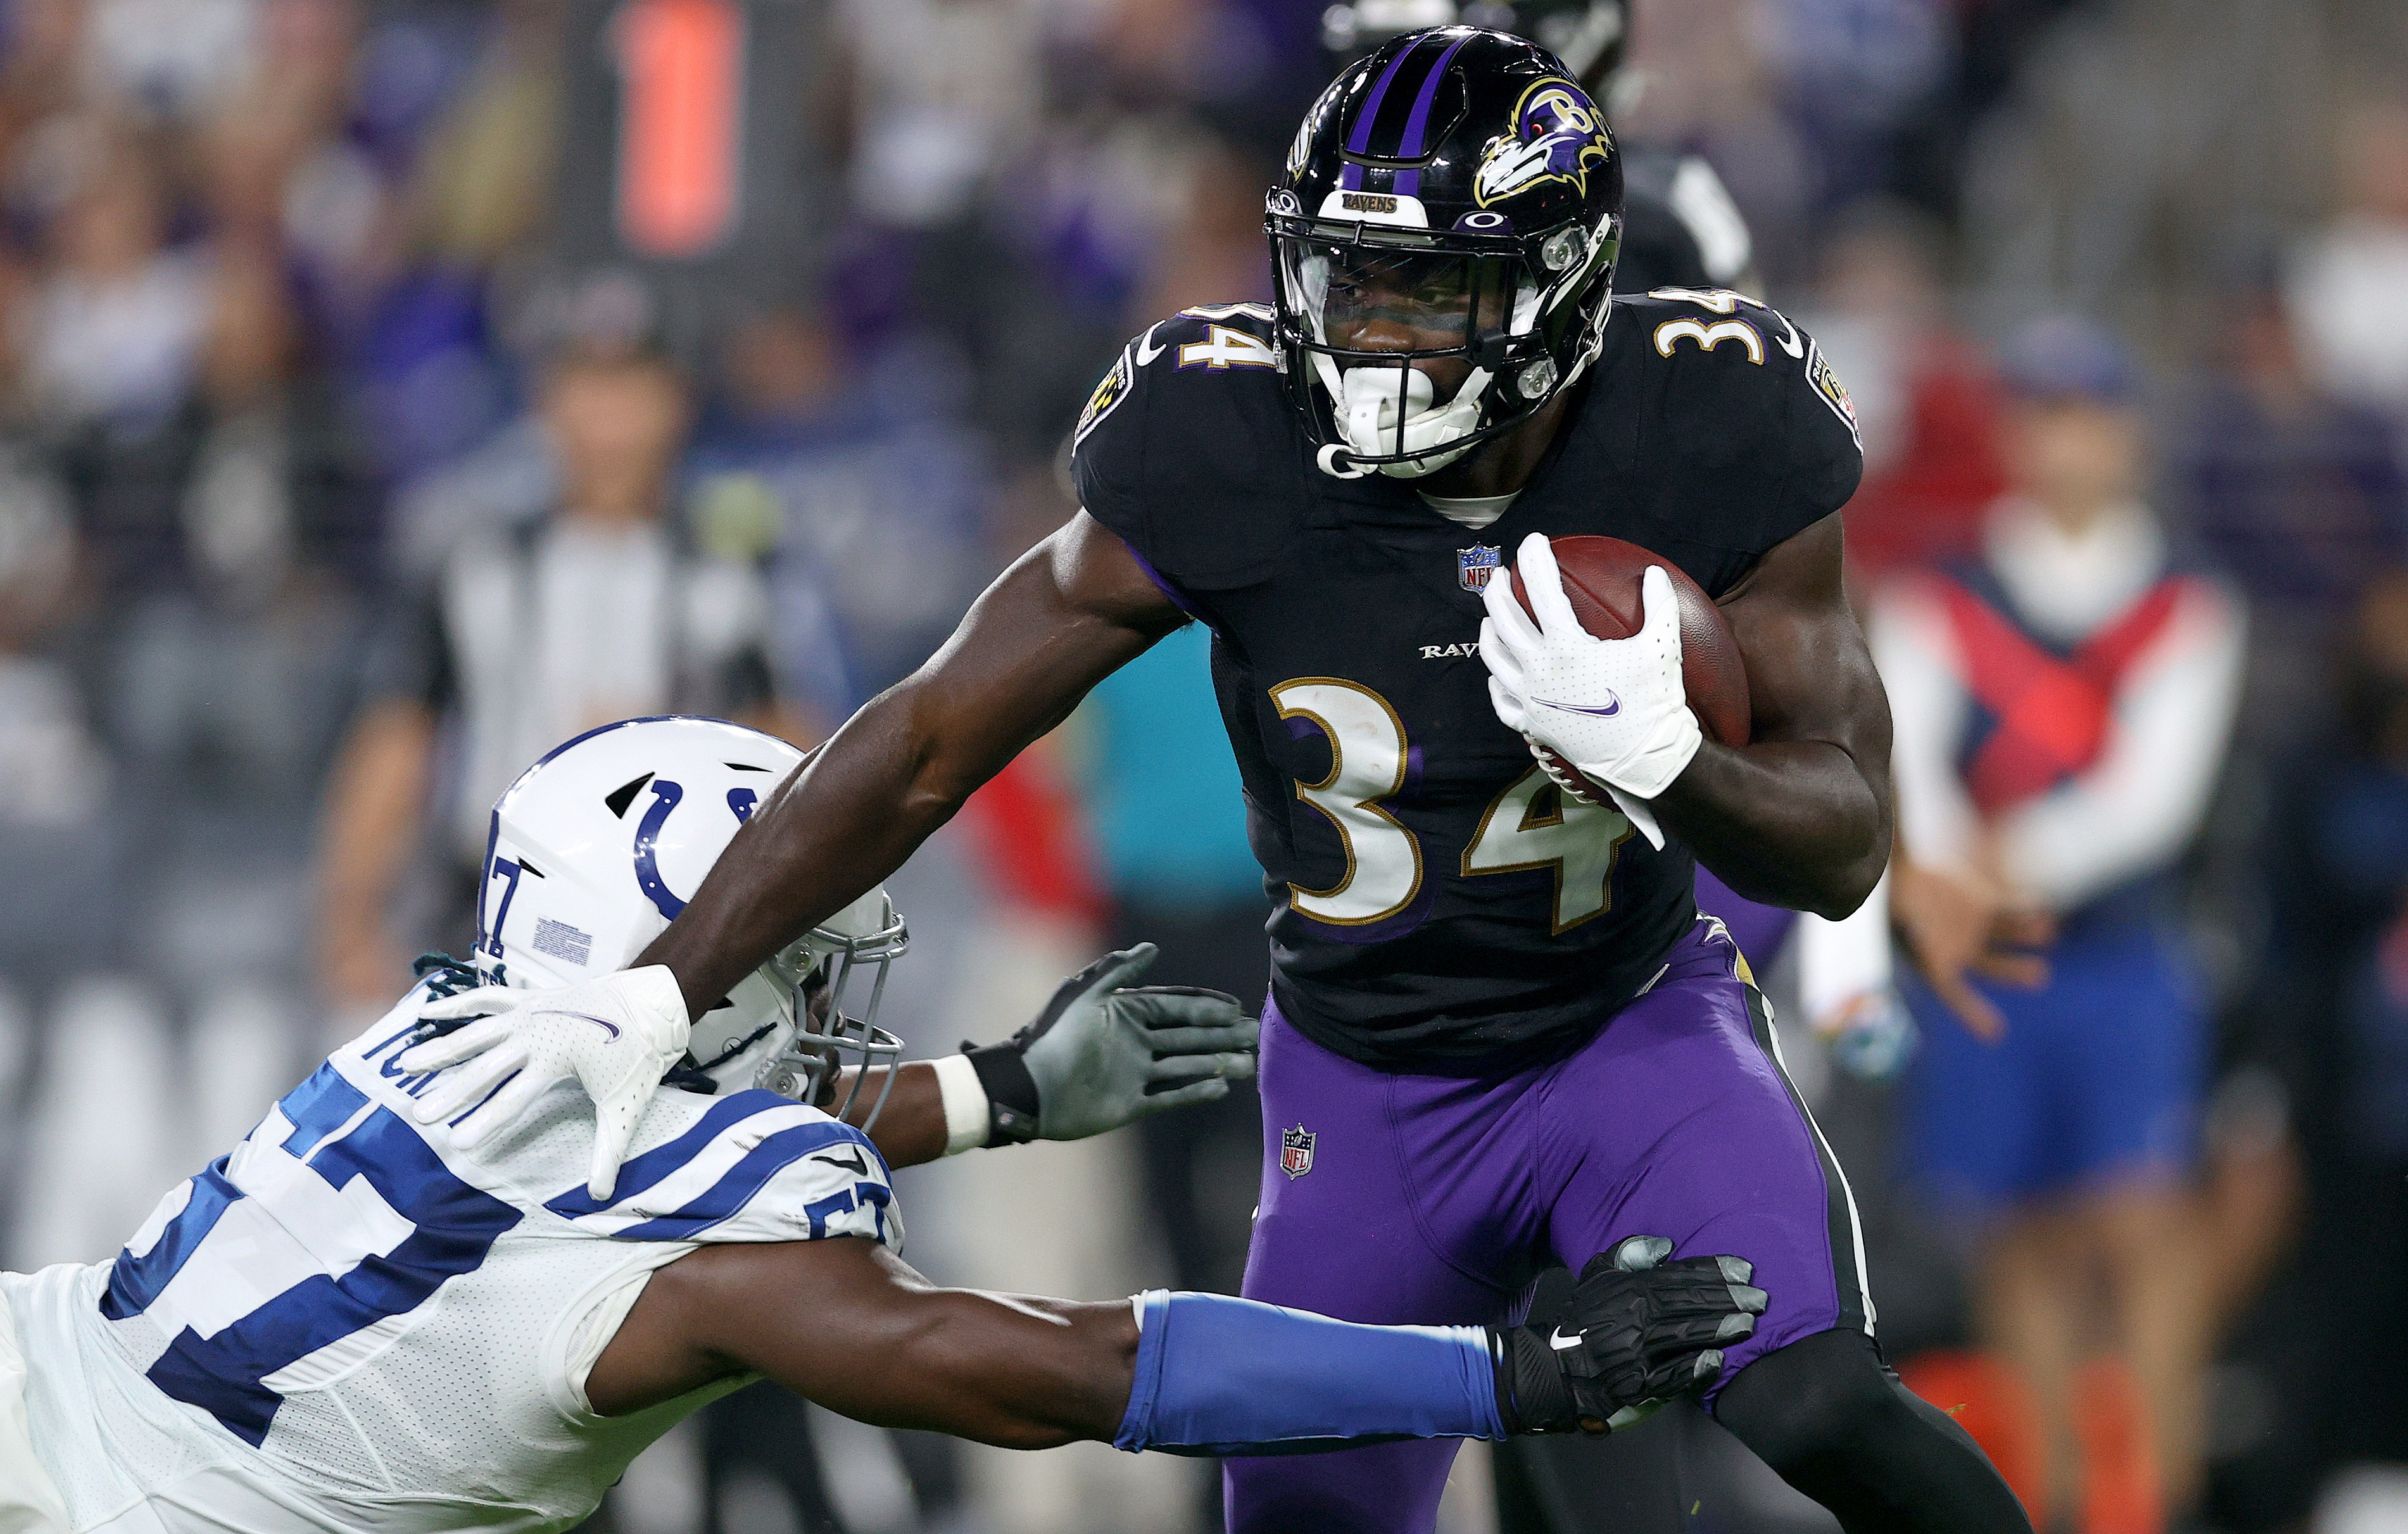 Devonta Freeman #34 of the Baltimore Ravens rushes during the second quarter in a game against the Indianapolis Colts at M&T Bank Stadium on October 11, 2021 in Baltimore, Maryland.